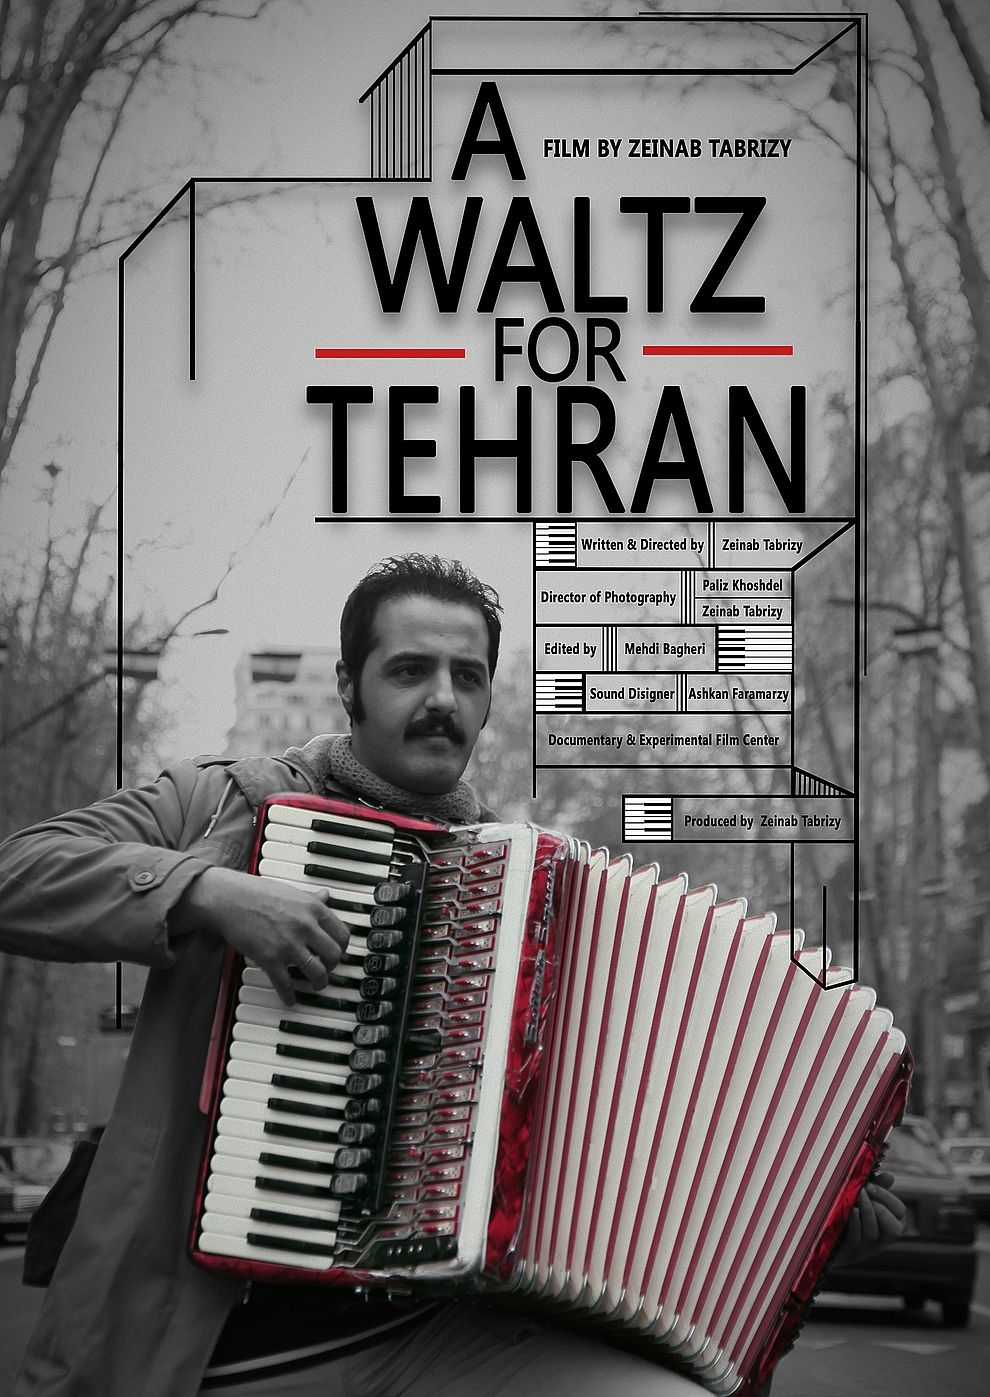 A Waltz for Tehran & The process (Poster)